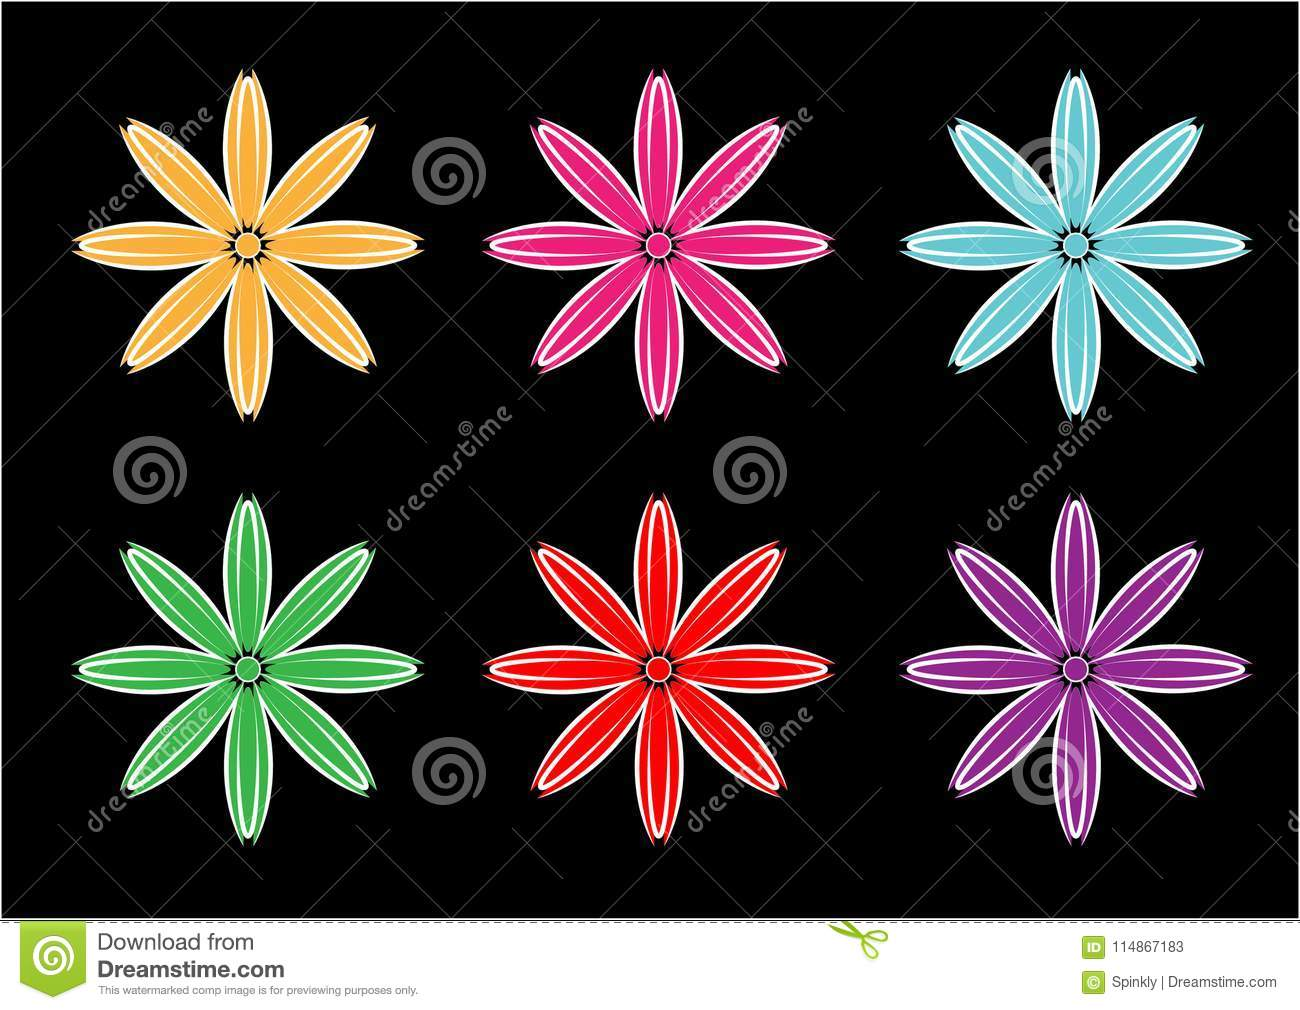 Flower background vector designs in different colors